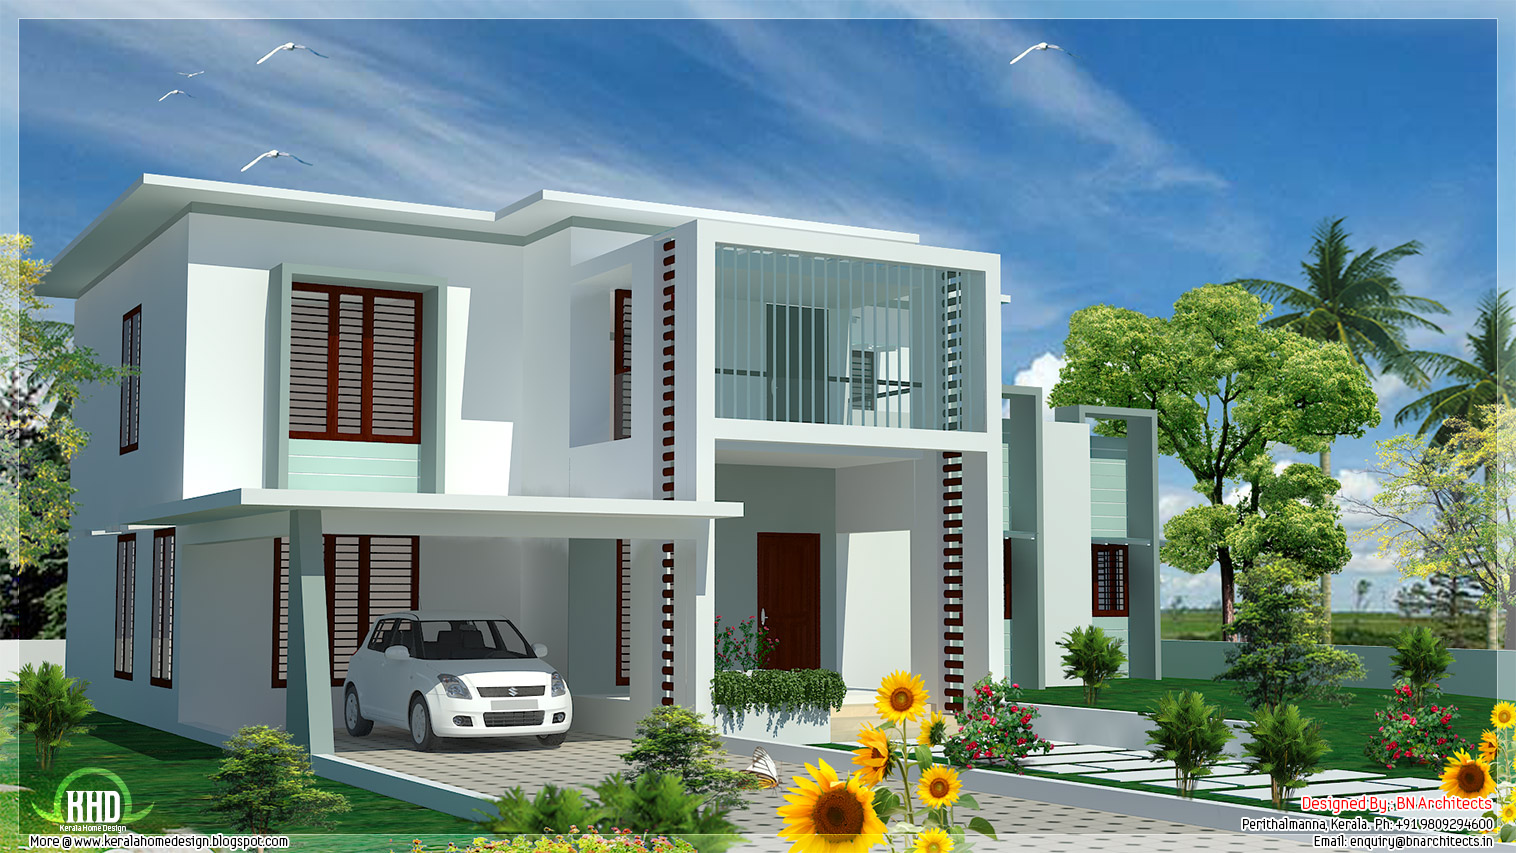 4 bedroom modern flat roof house kerala home design and for Kerala modern house designs